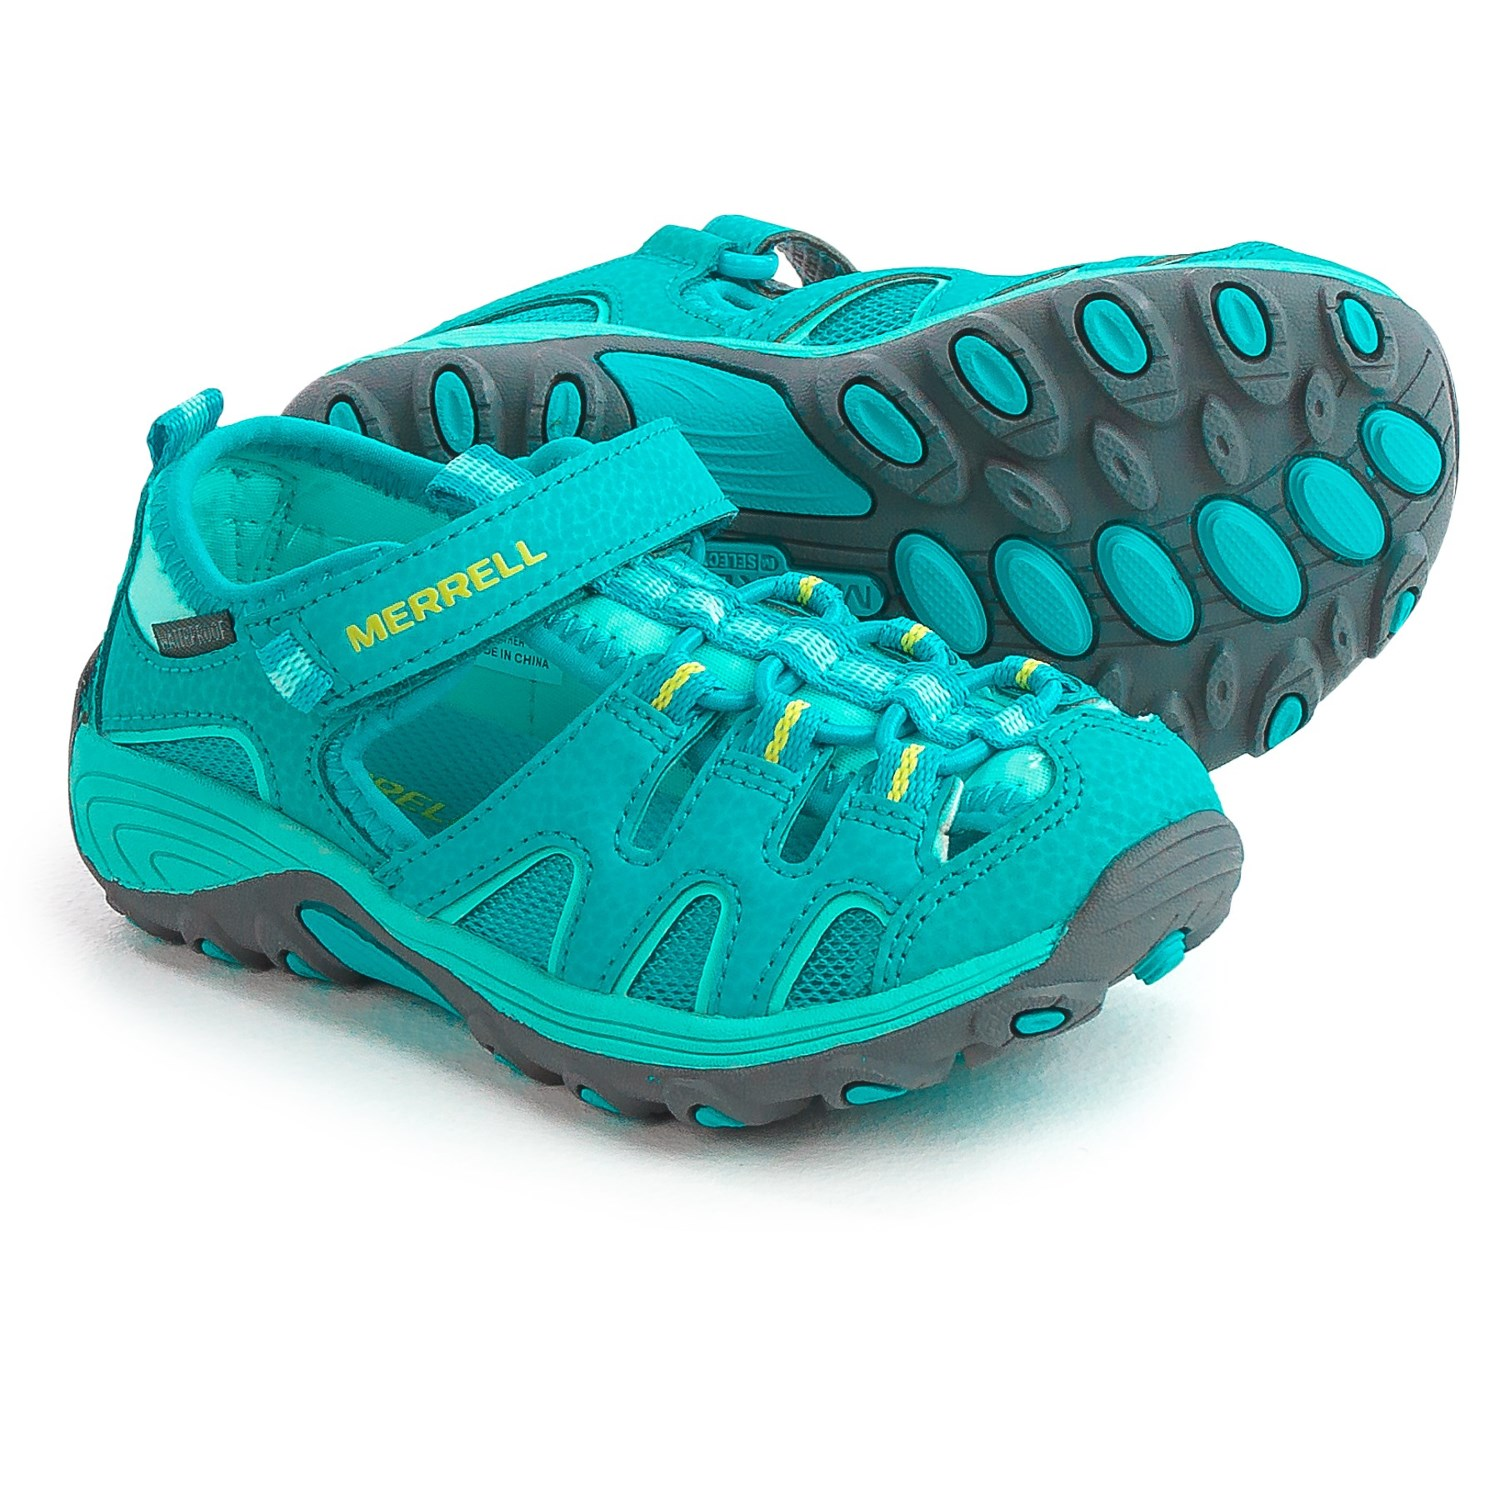 cd7b987f964 Merrell Hydro H2O Hiker Sandals (For Little and Big Girls)